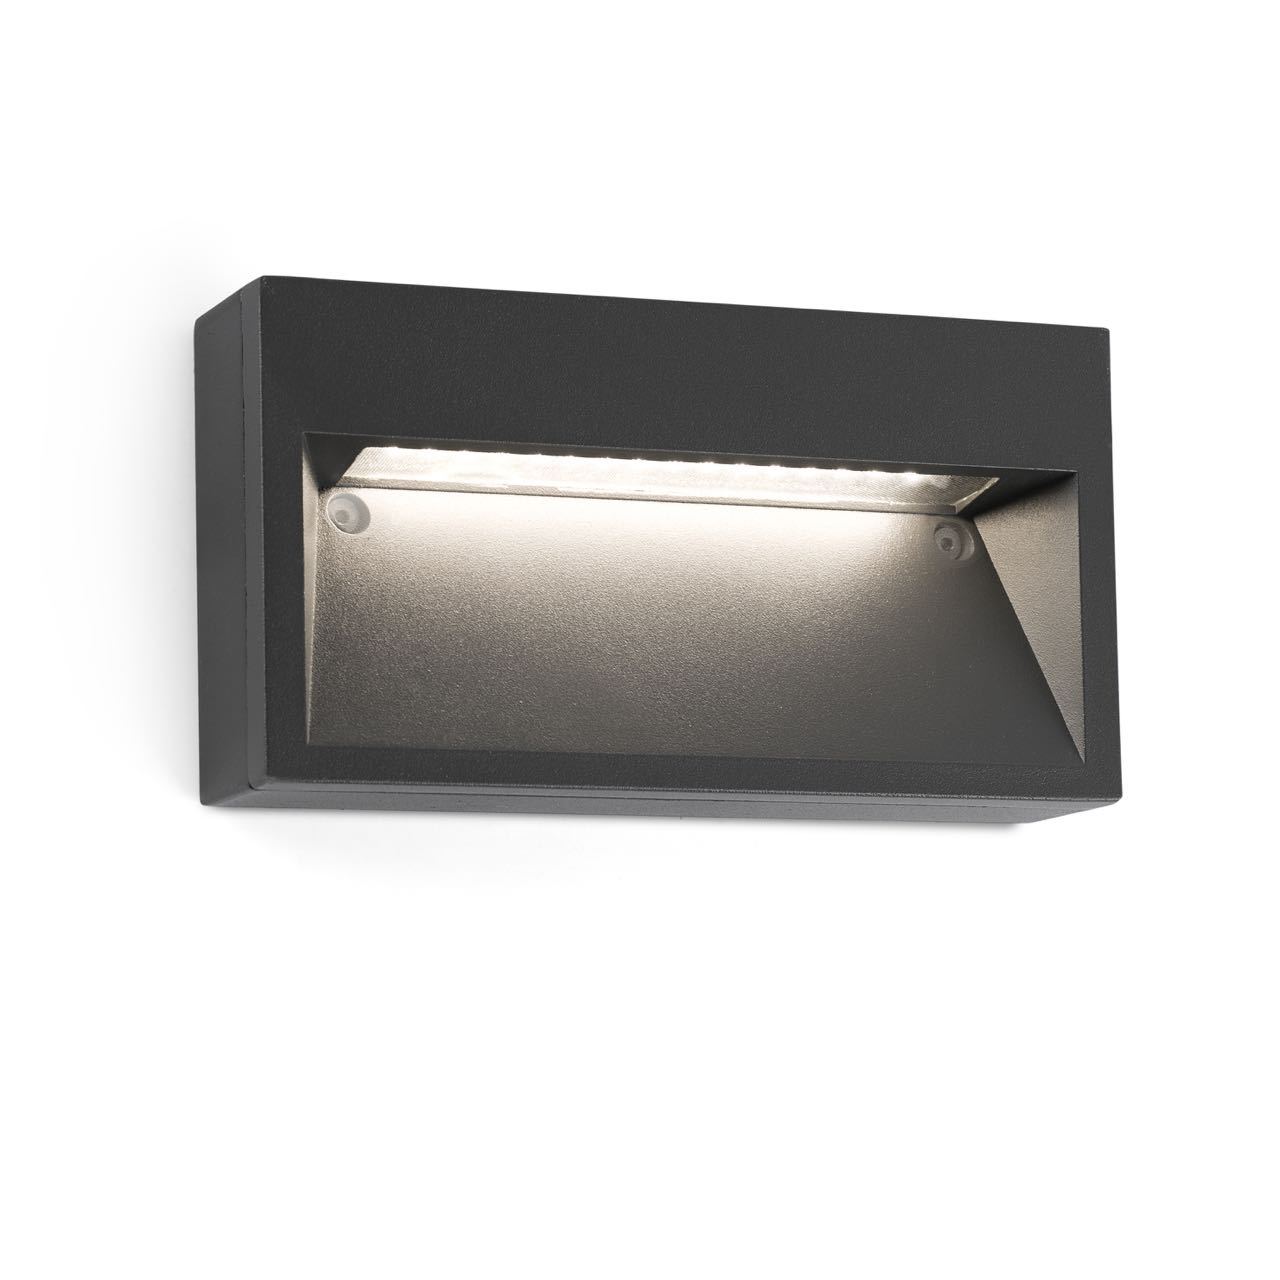 Comprar aplique de pared para jard n con led path de faro for Apliques de pared exterior led